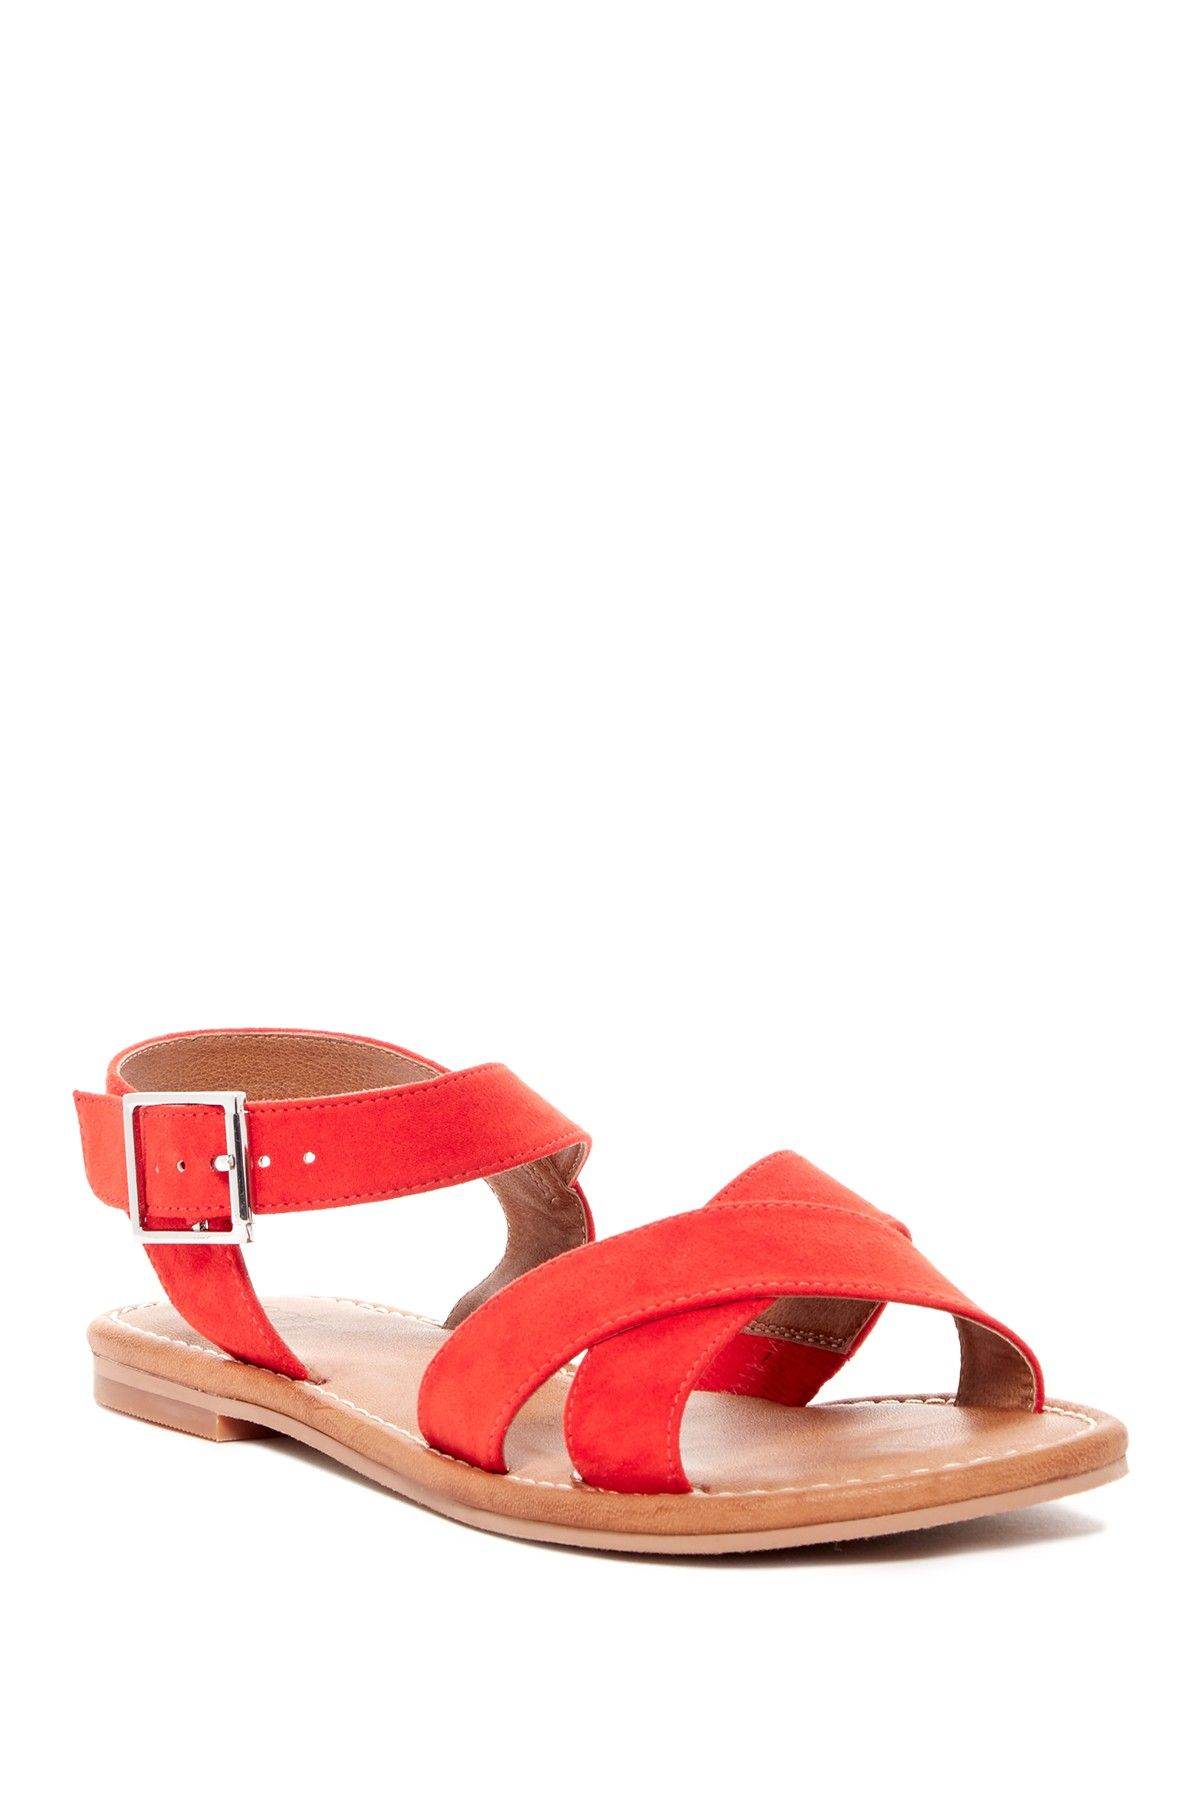 Abound Meesha Ankle Strap Sandal | Ankle strap sandals